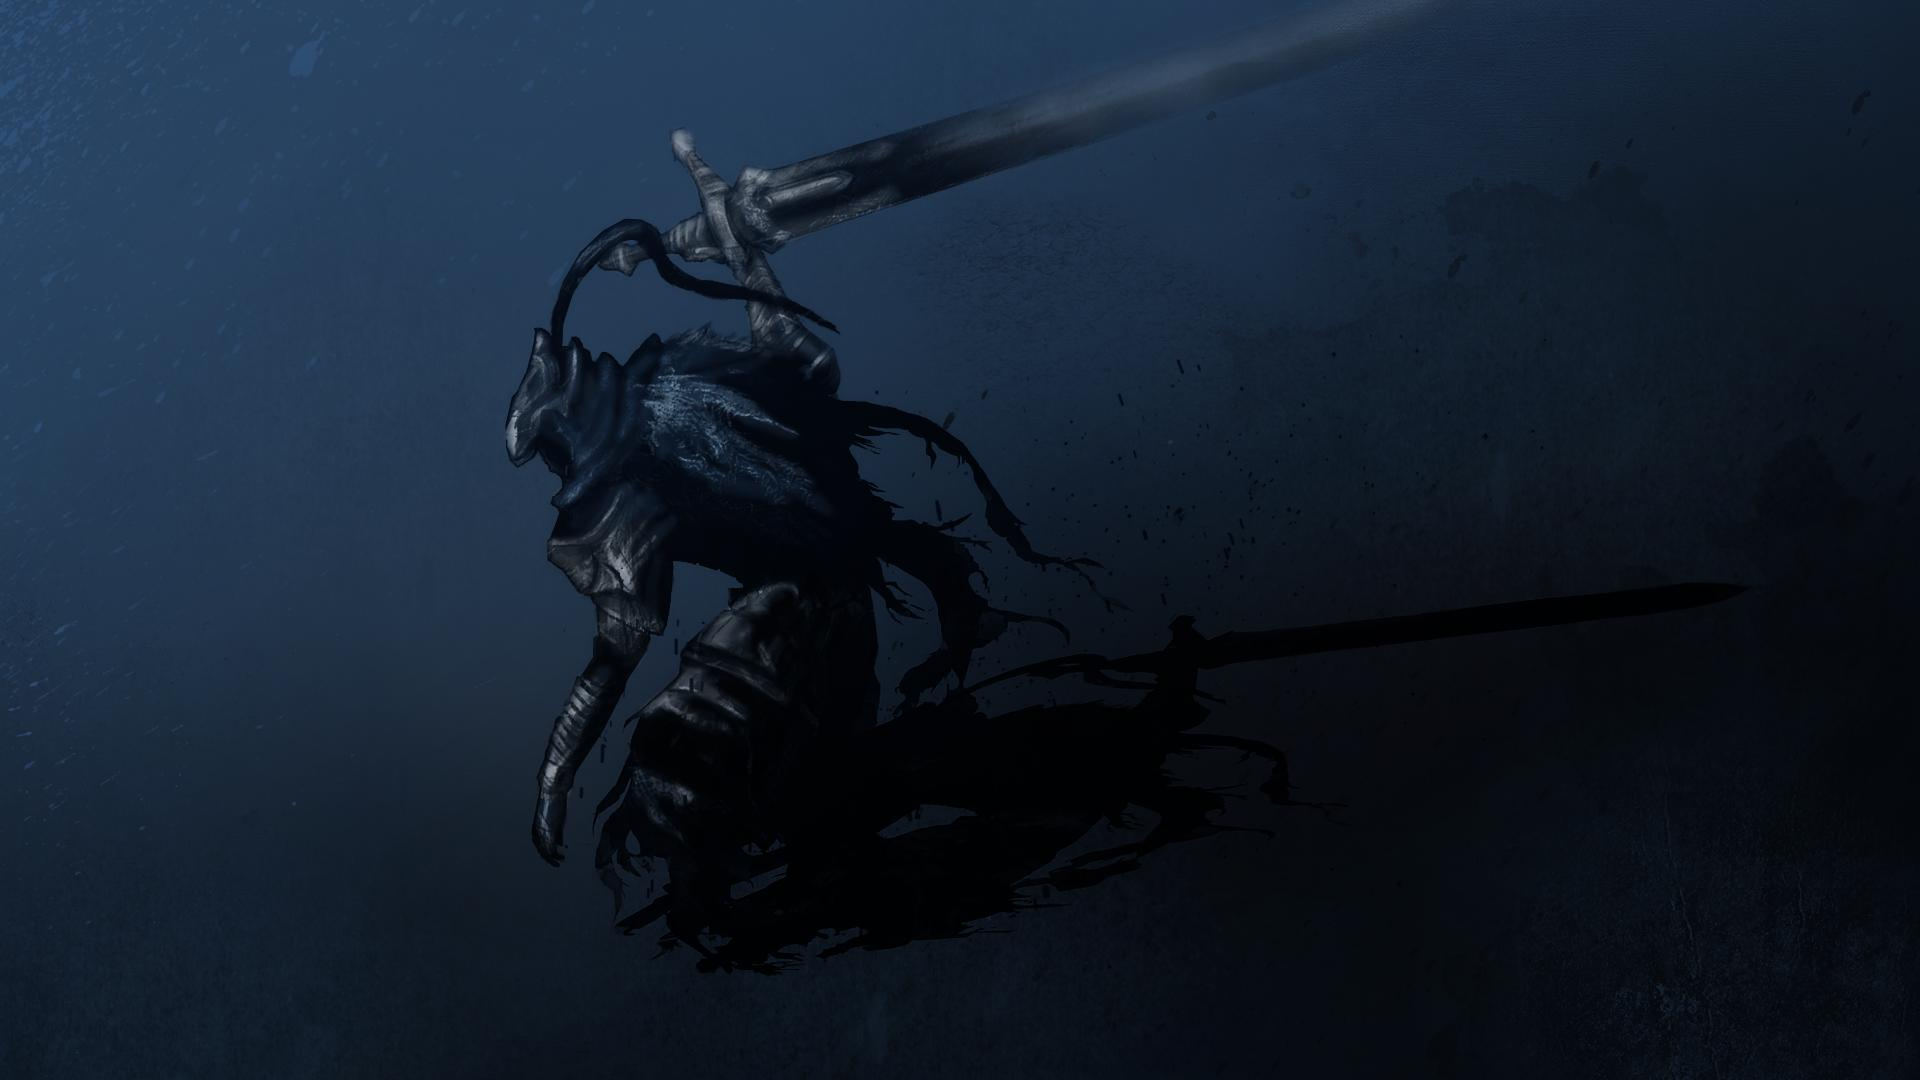 Artorias Wallpapers Top Free Artorias Backgrounds Wallpaperaccess